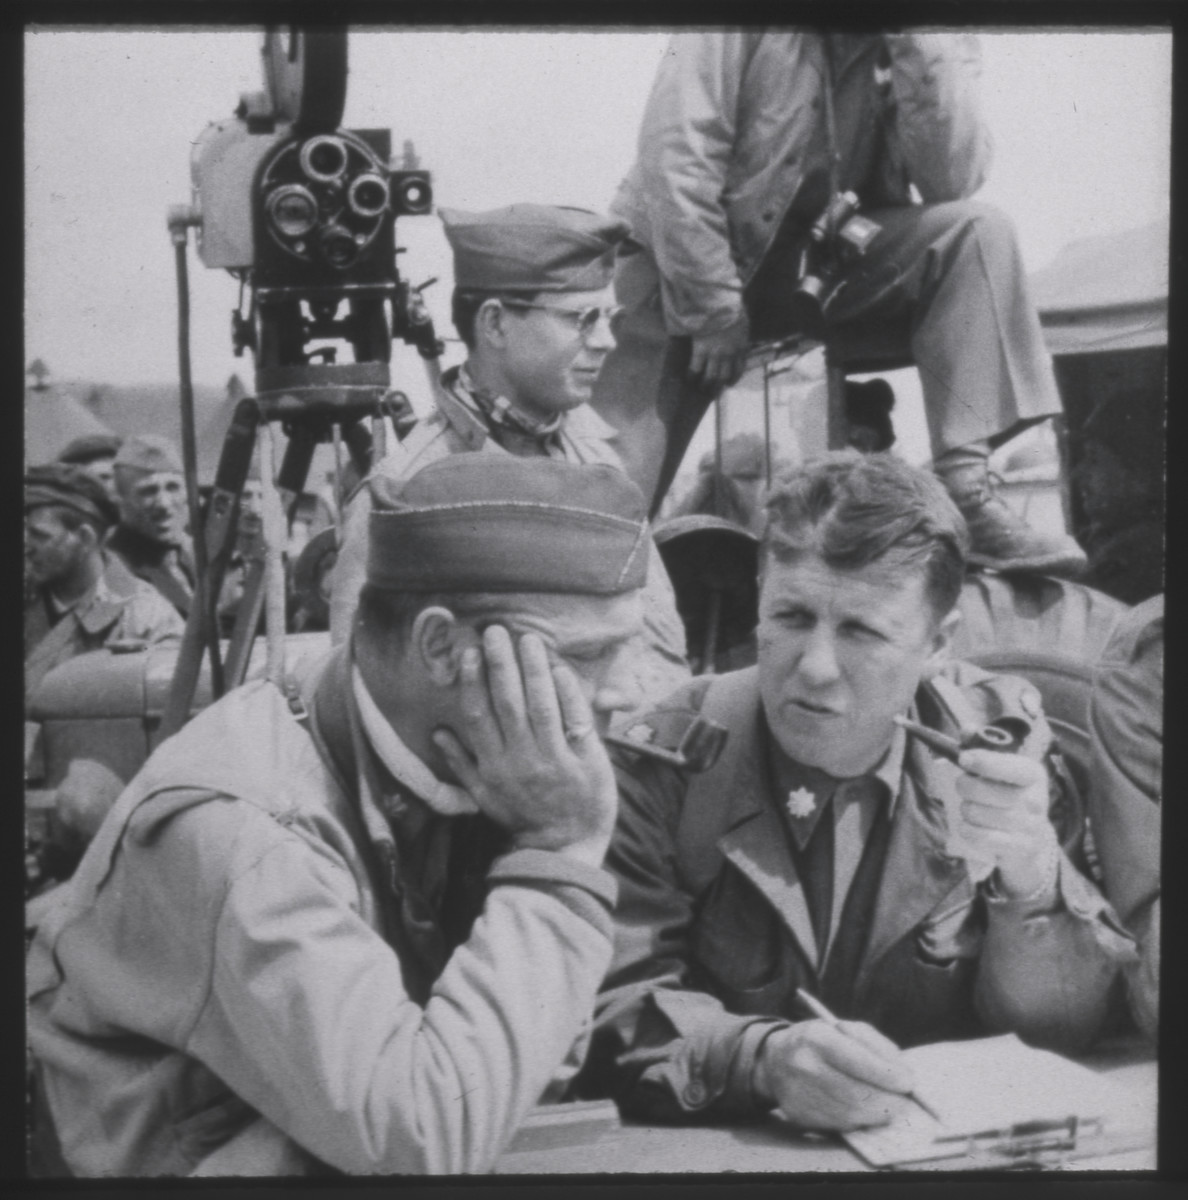 Members of the SPECOU group (Special Motion Picture Coverage Unit) of the Allied Expeditionary Force compile a report.  Seated with pencil and clipboard is George Stevens.